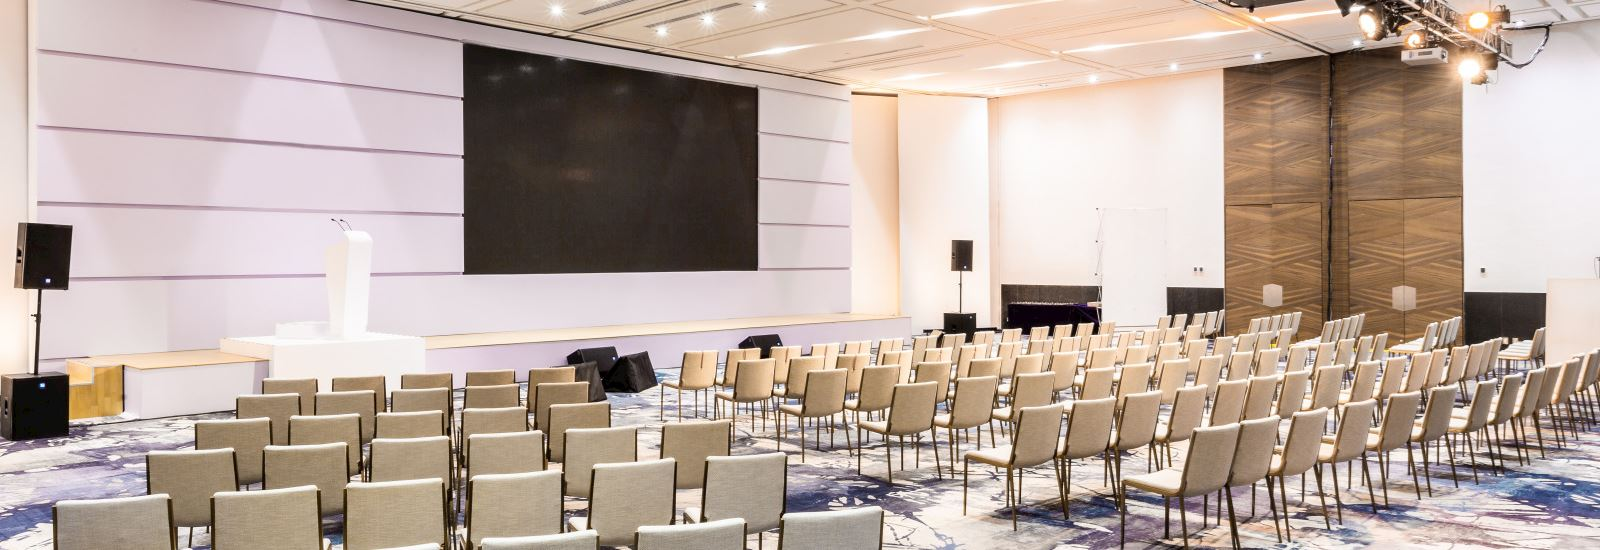 Meetings Services offered at Grand Velas Los Cabos